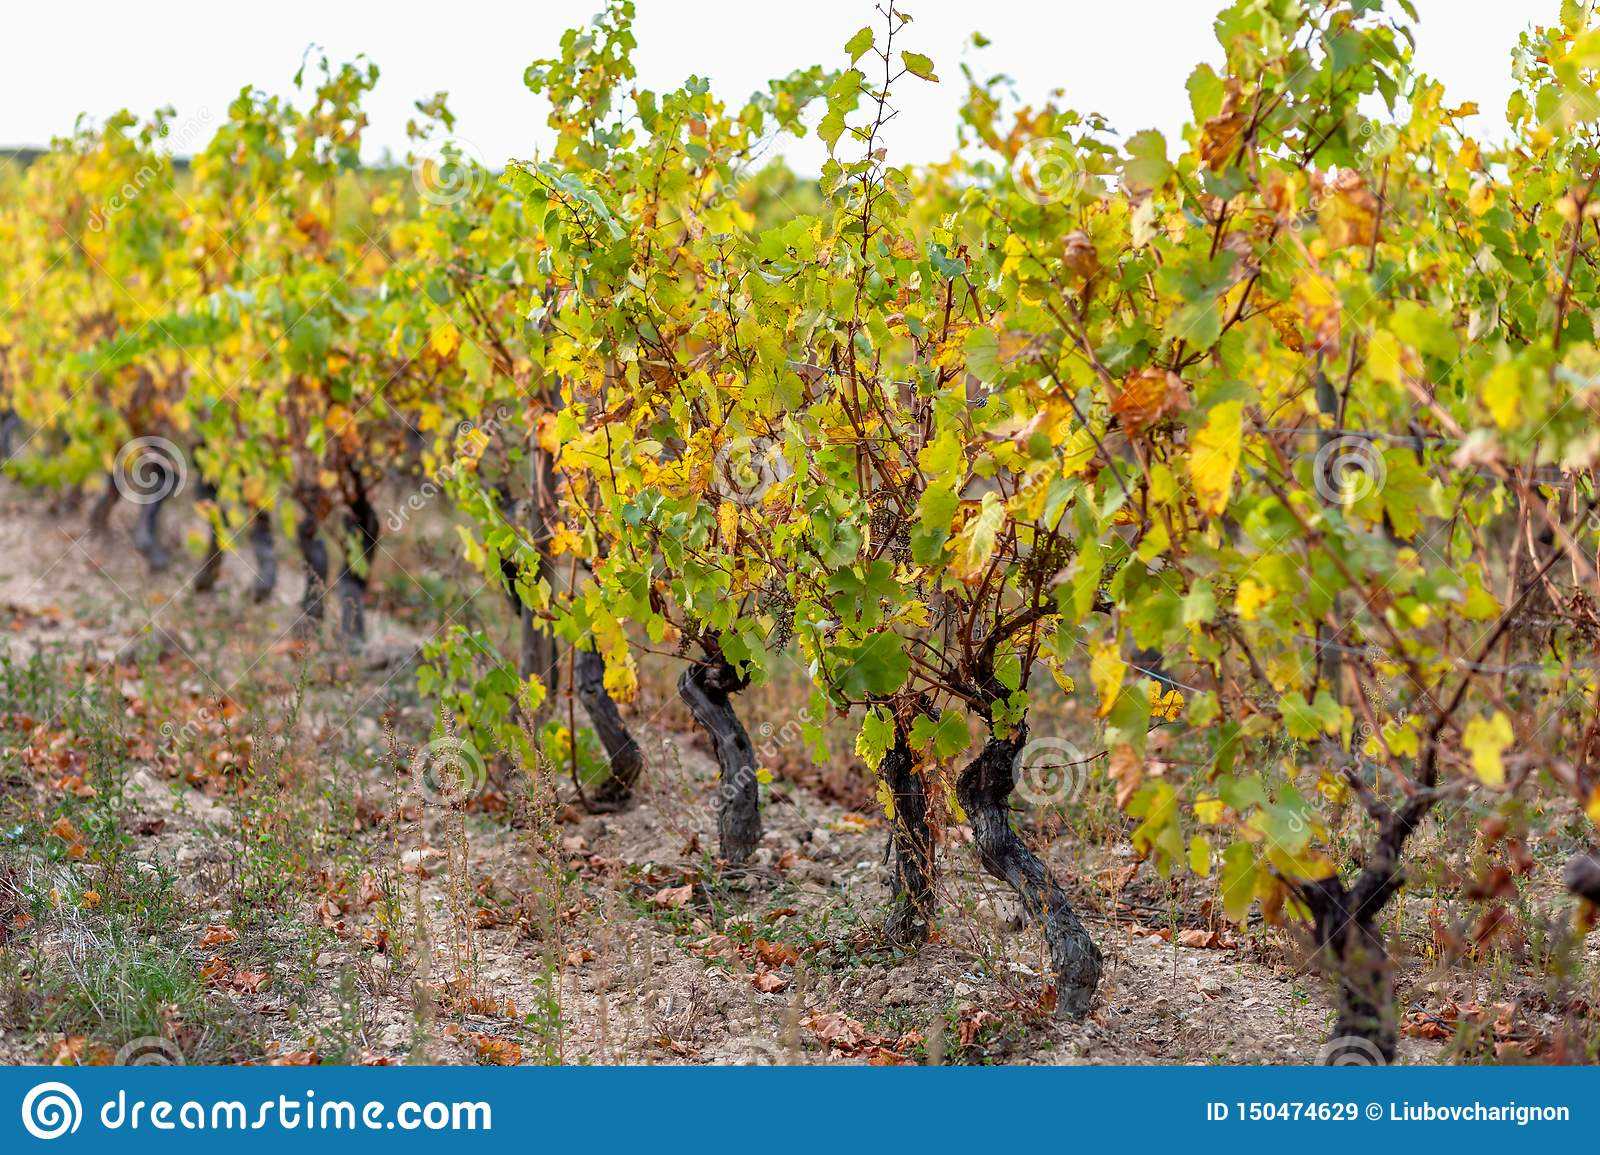 Autumn leaves of grapes. Grapevine in the fall. Autumn vineyard.